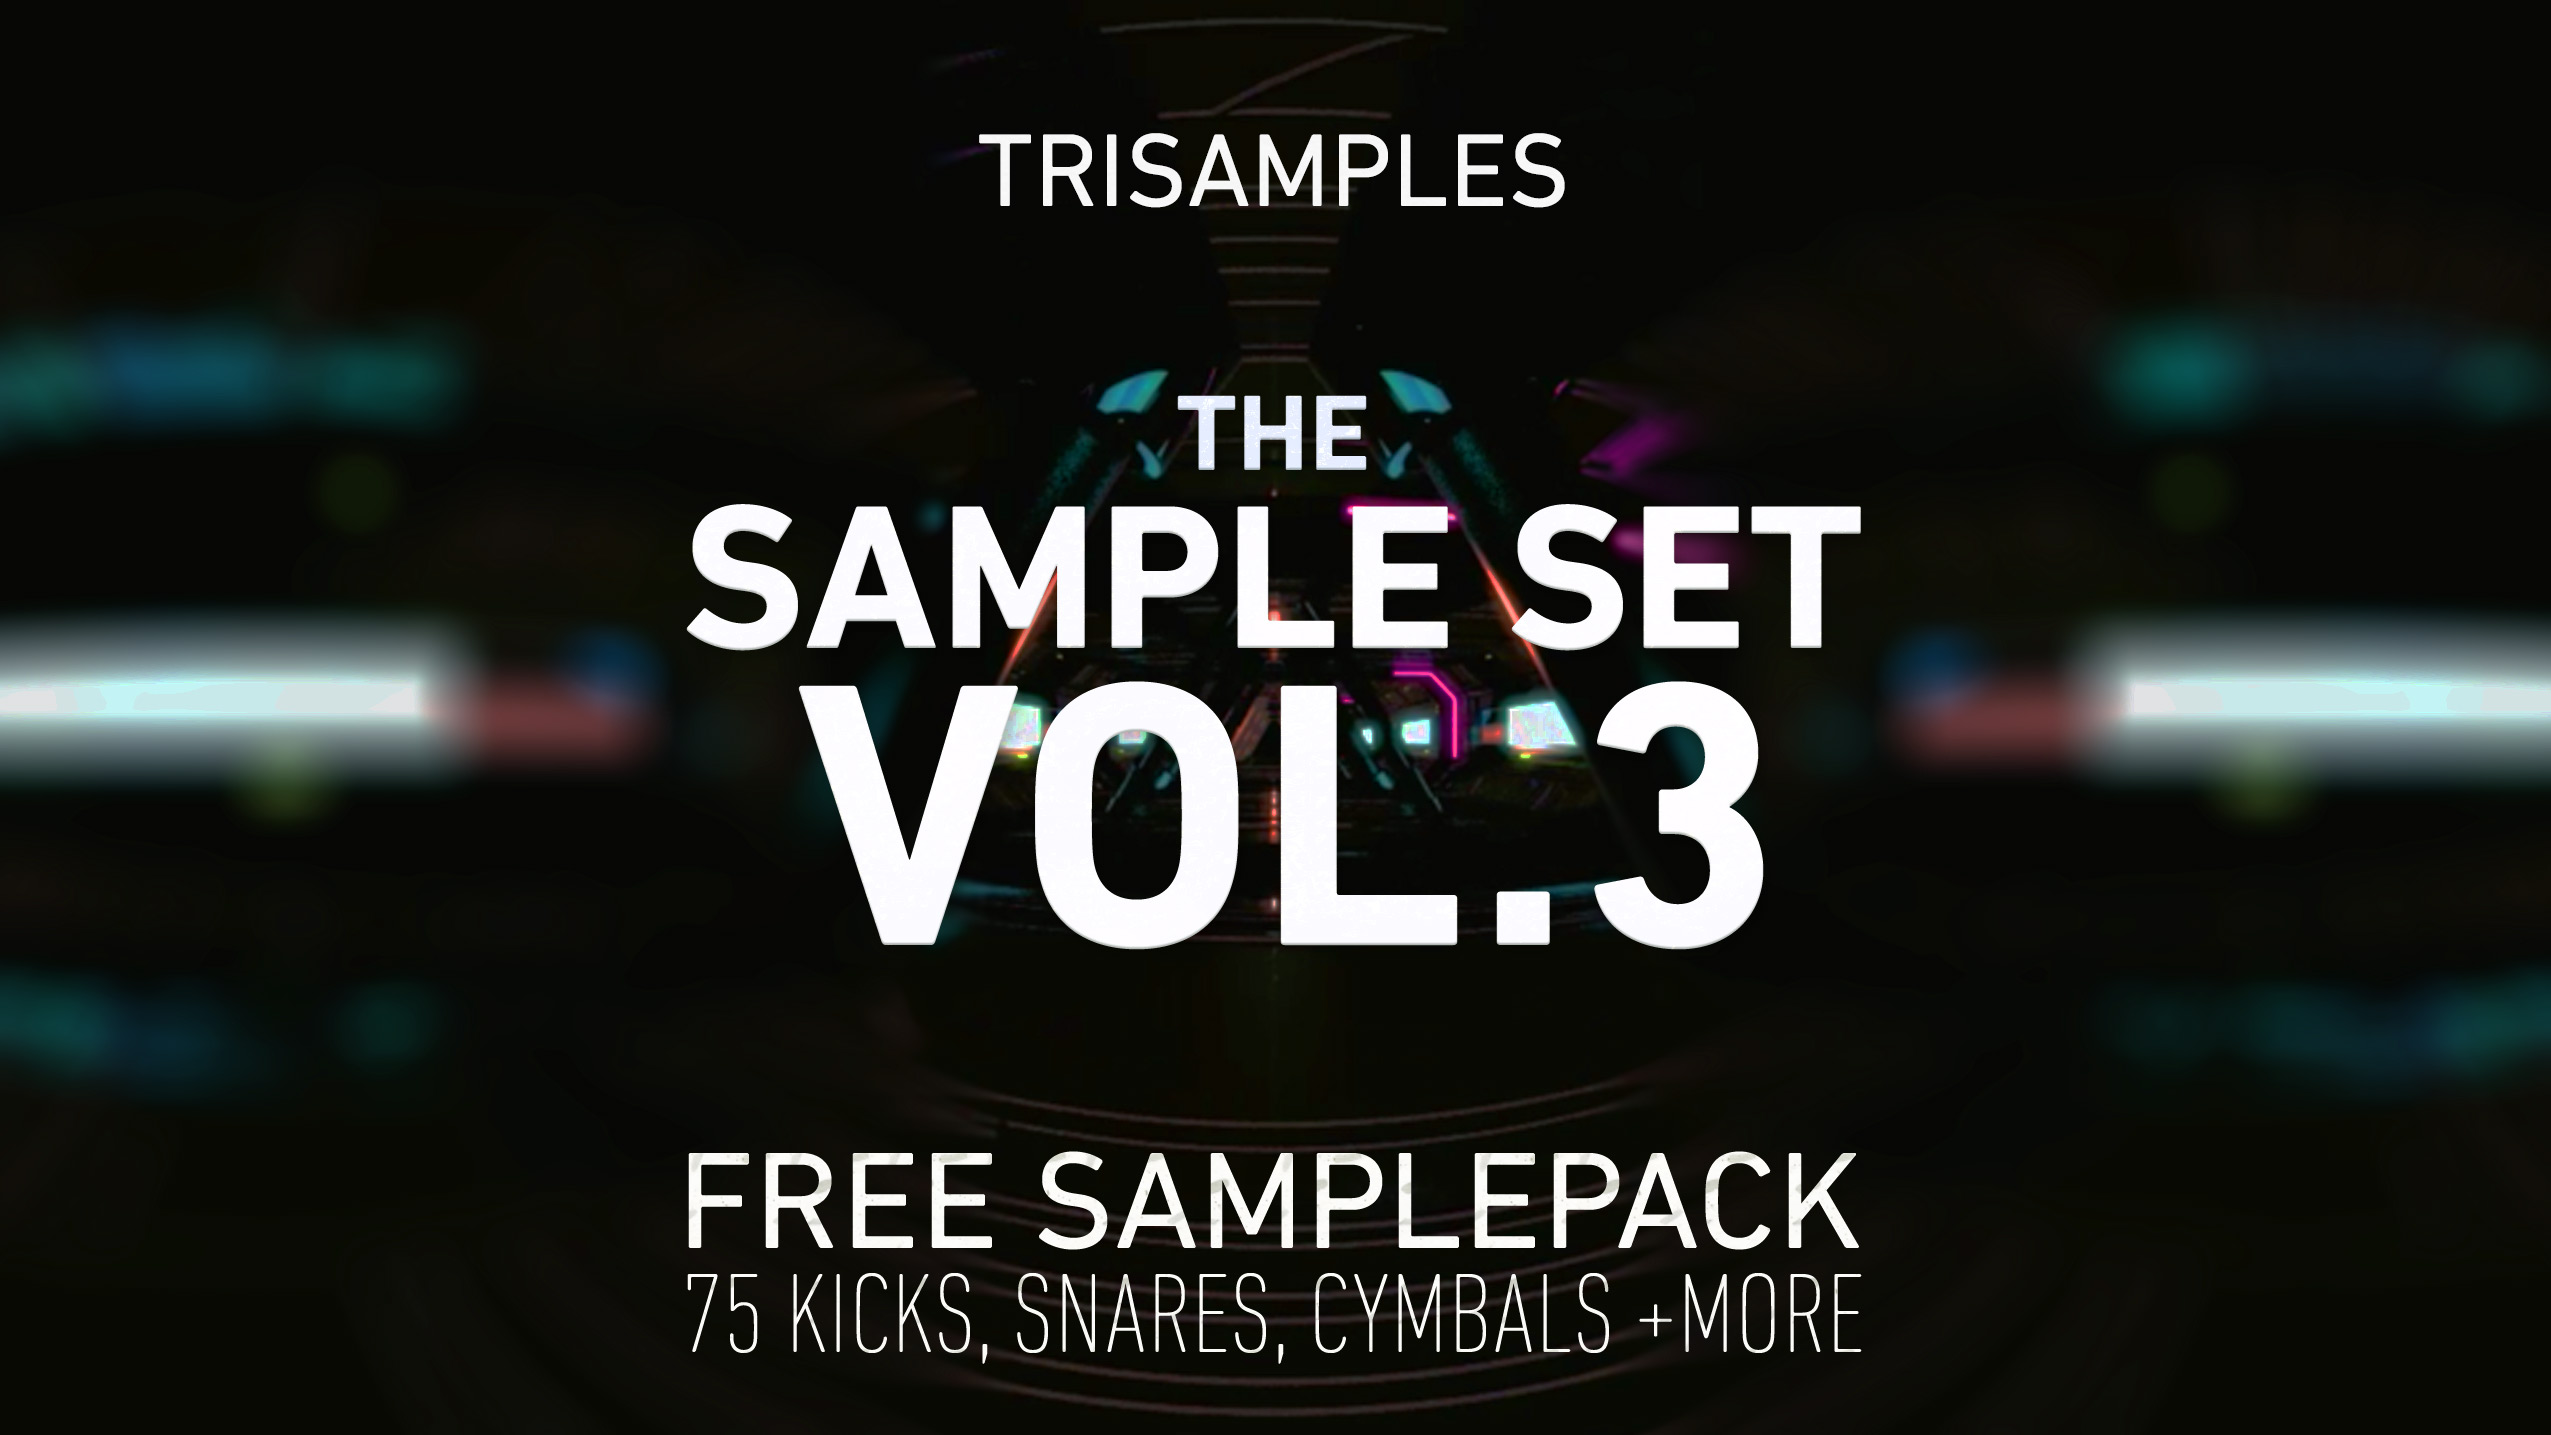 TriSamples---The-Sample-Set-Vol-3-Artwork